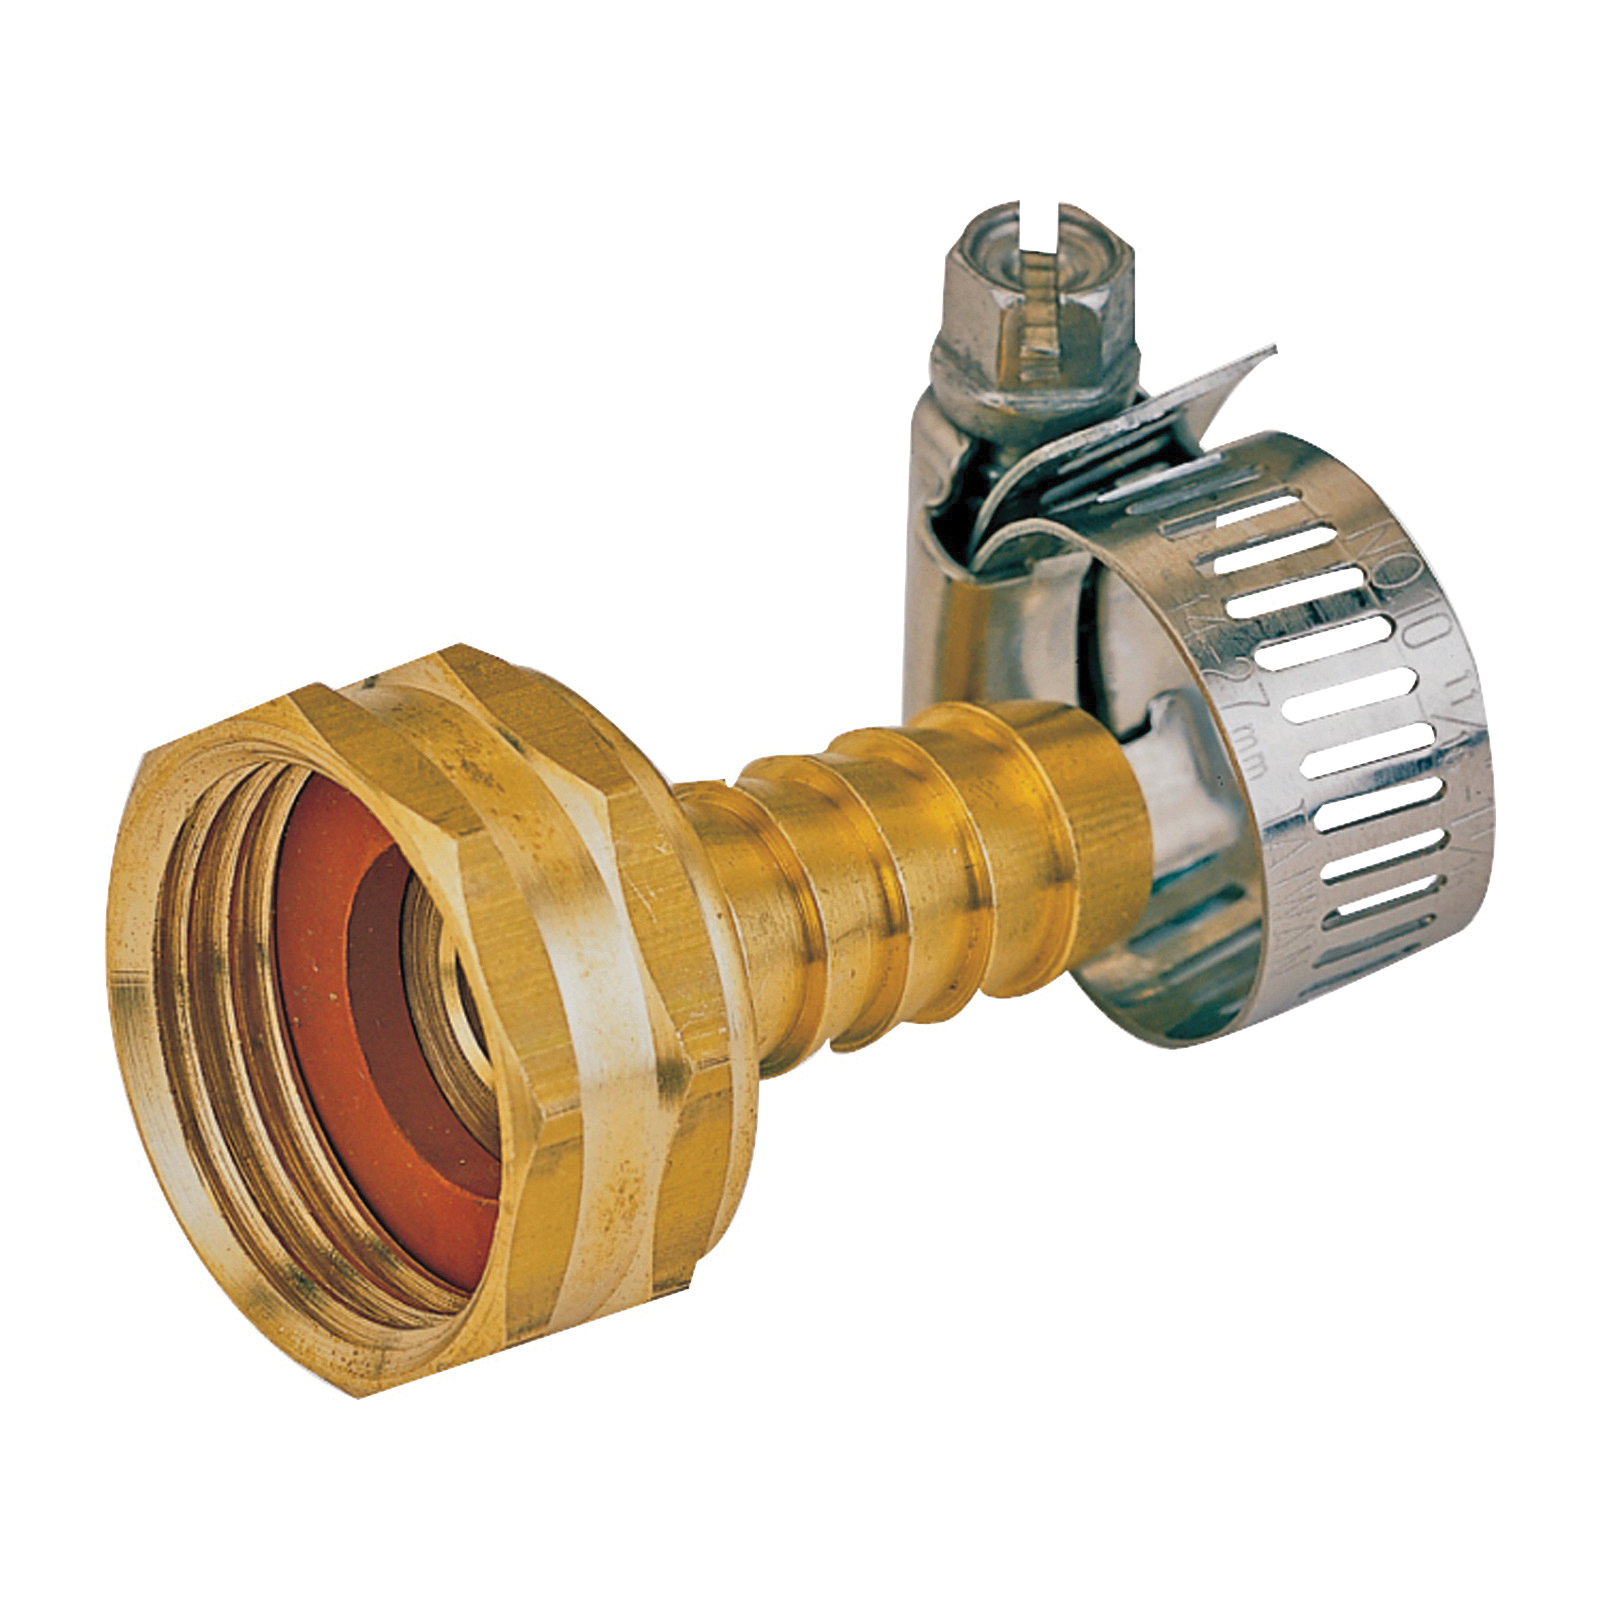 Picture of Landscapers Select GB934F3L Hose Coupling, 1/2 in, Female, Brass, Brass